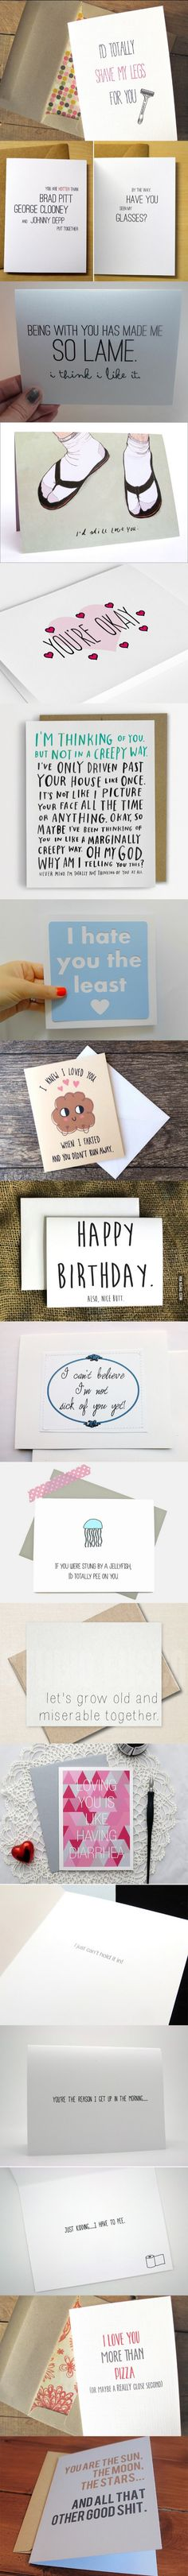 New birthday greetings humor hilarious funny cards ideas Diy Cadeau, E Mc2, Idee Diy, Funny Cards, Funny Greeting Cards, Cute Cards, Funny Love, Just For Laughs, Birthday Cards